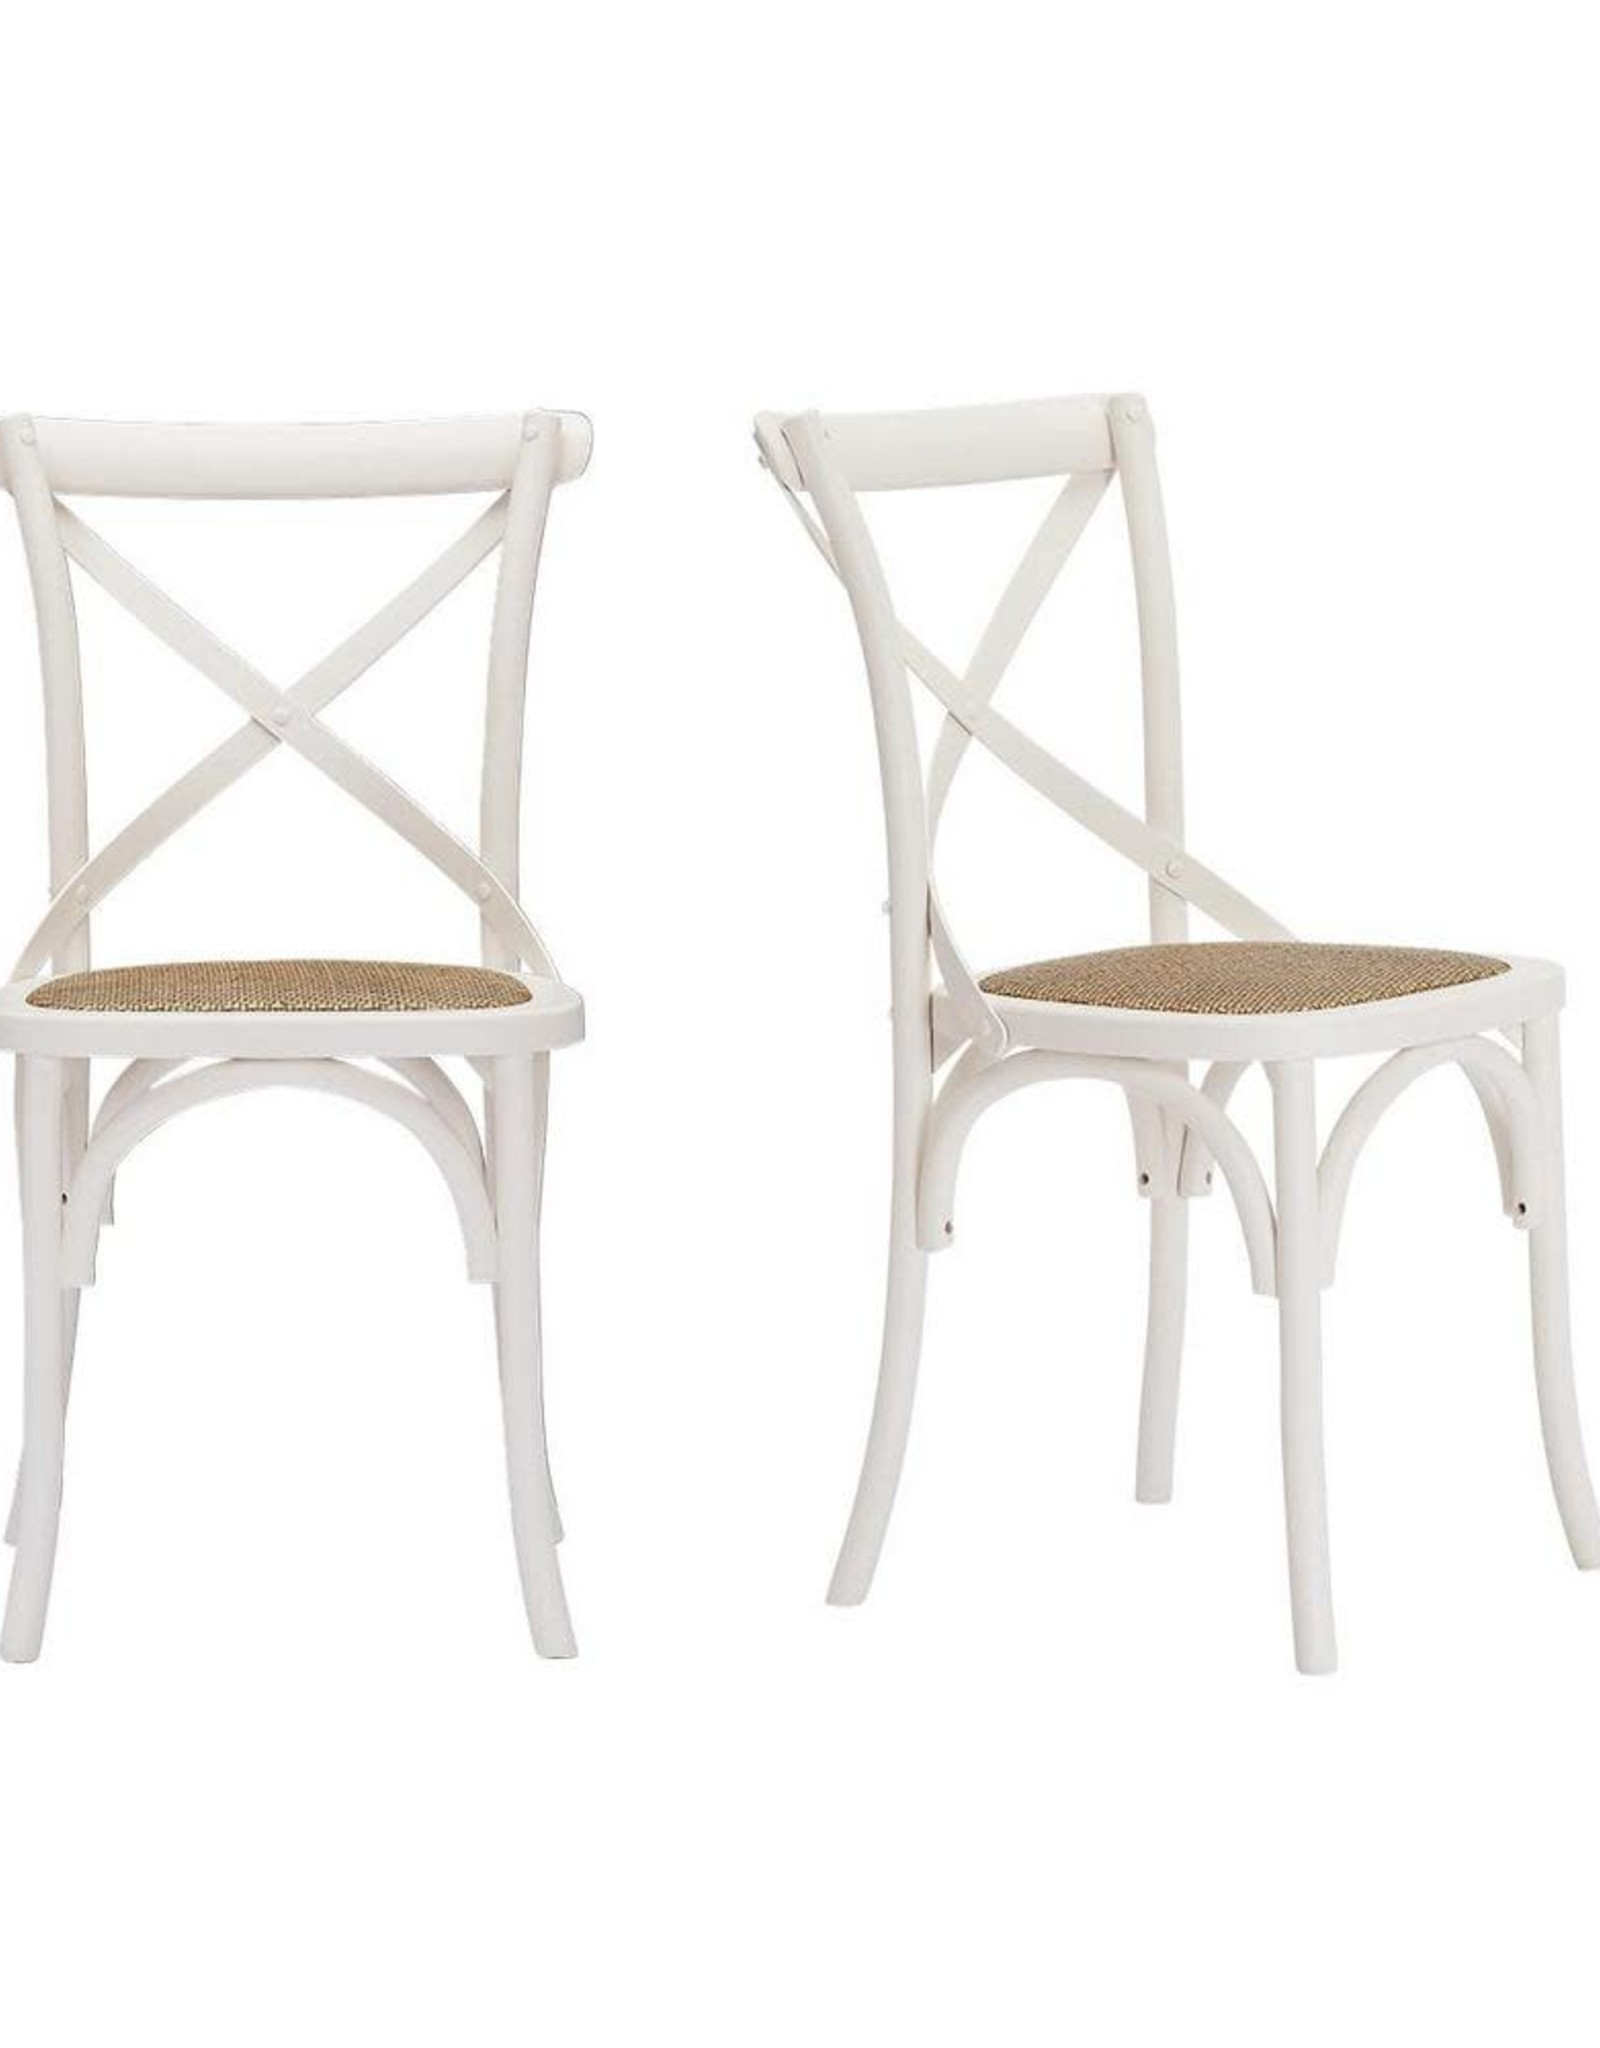 Home Decorators Collection Mavery Ivory Wood Dining Chair with Cross Back and Woven Seat